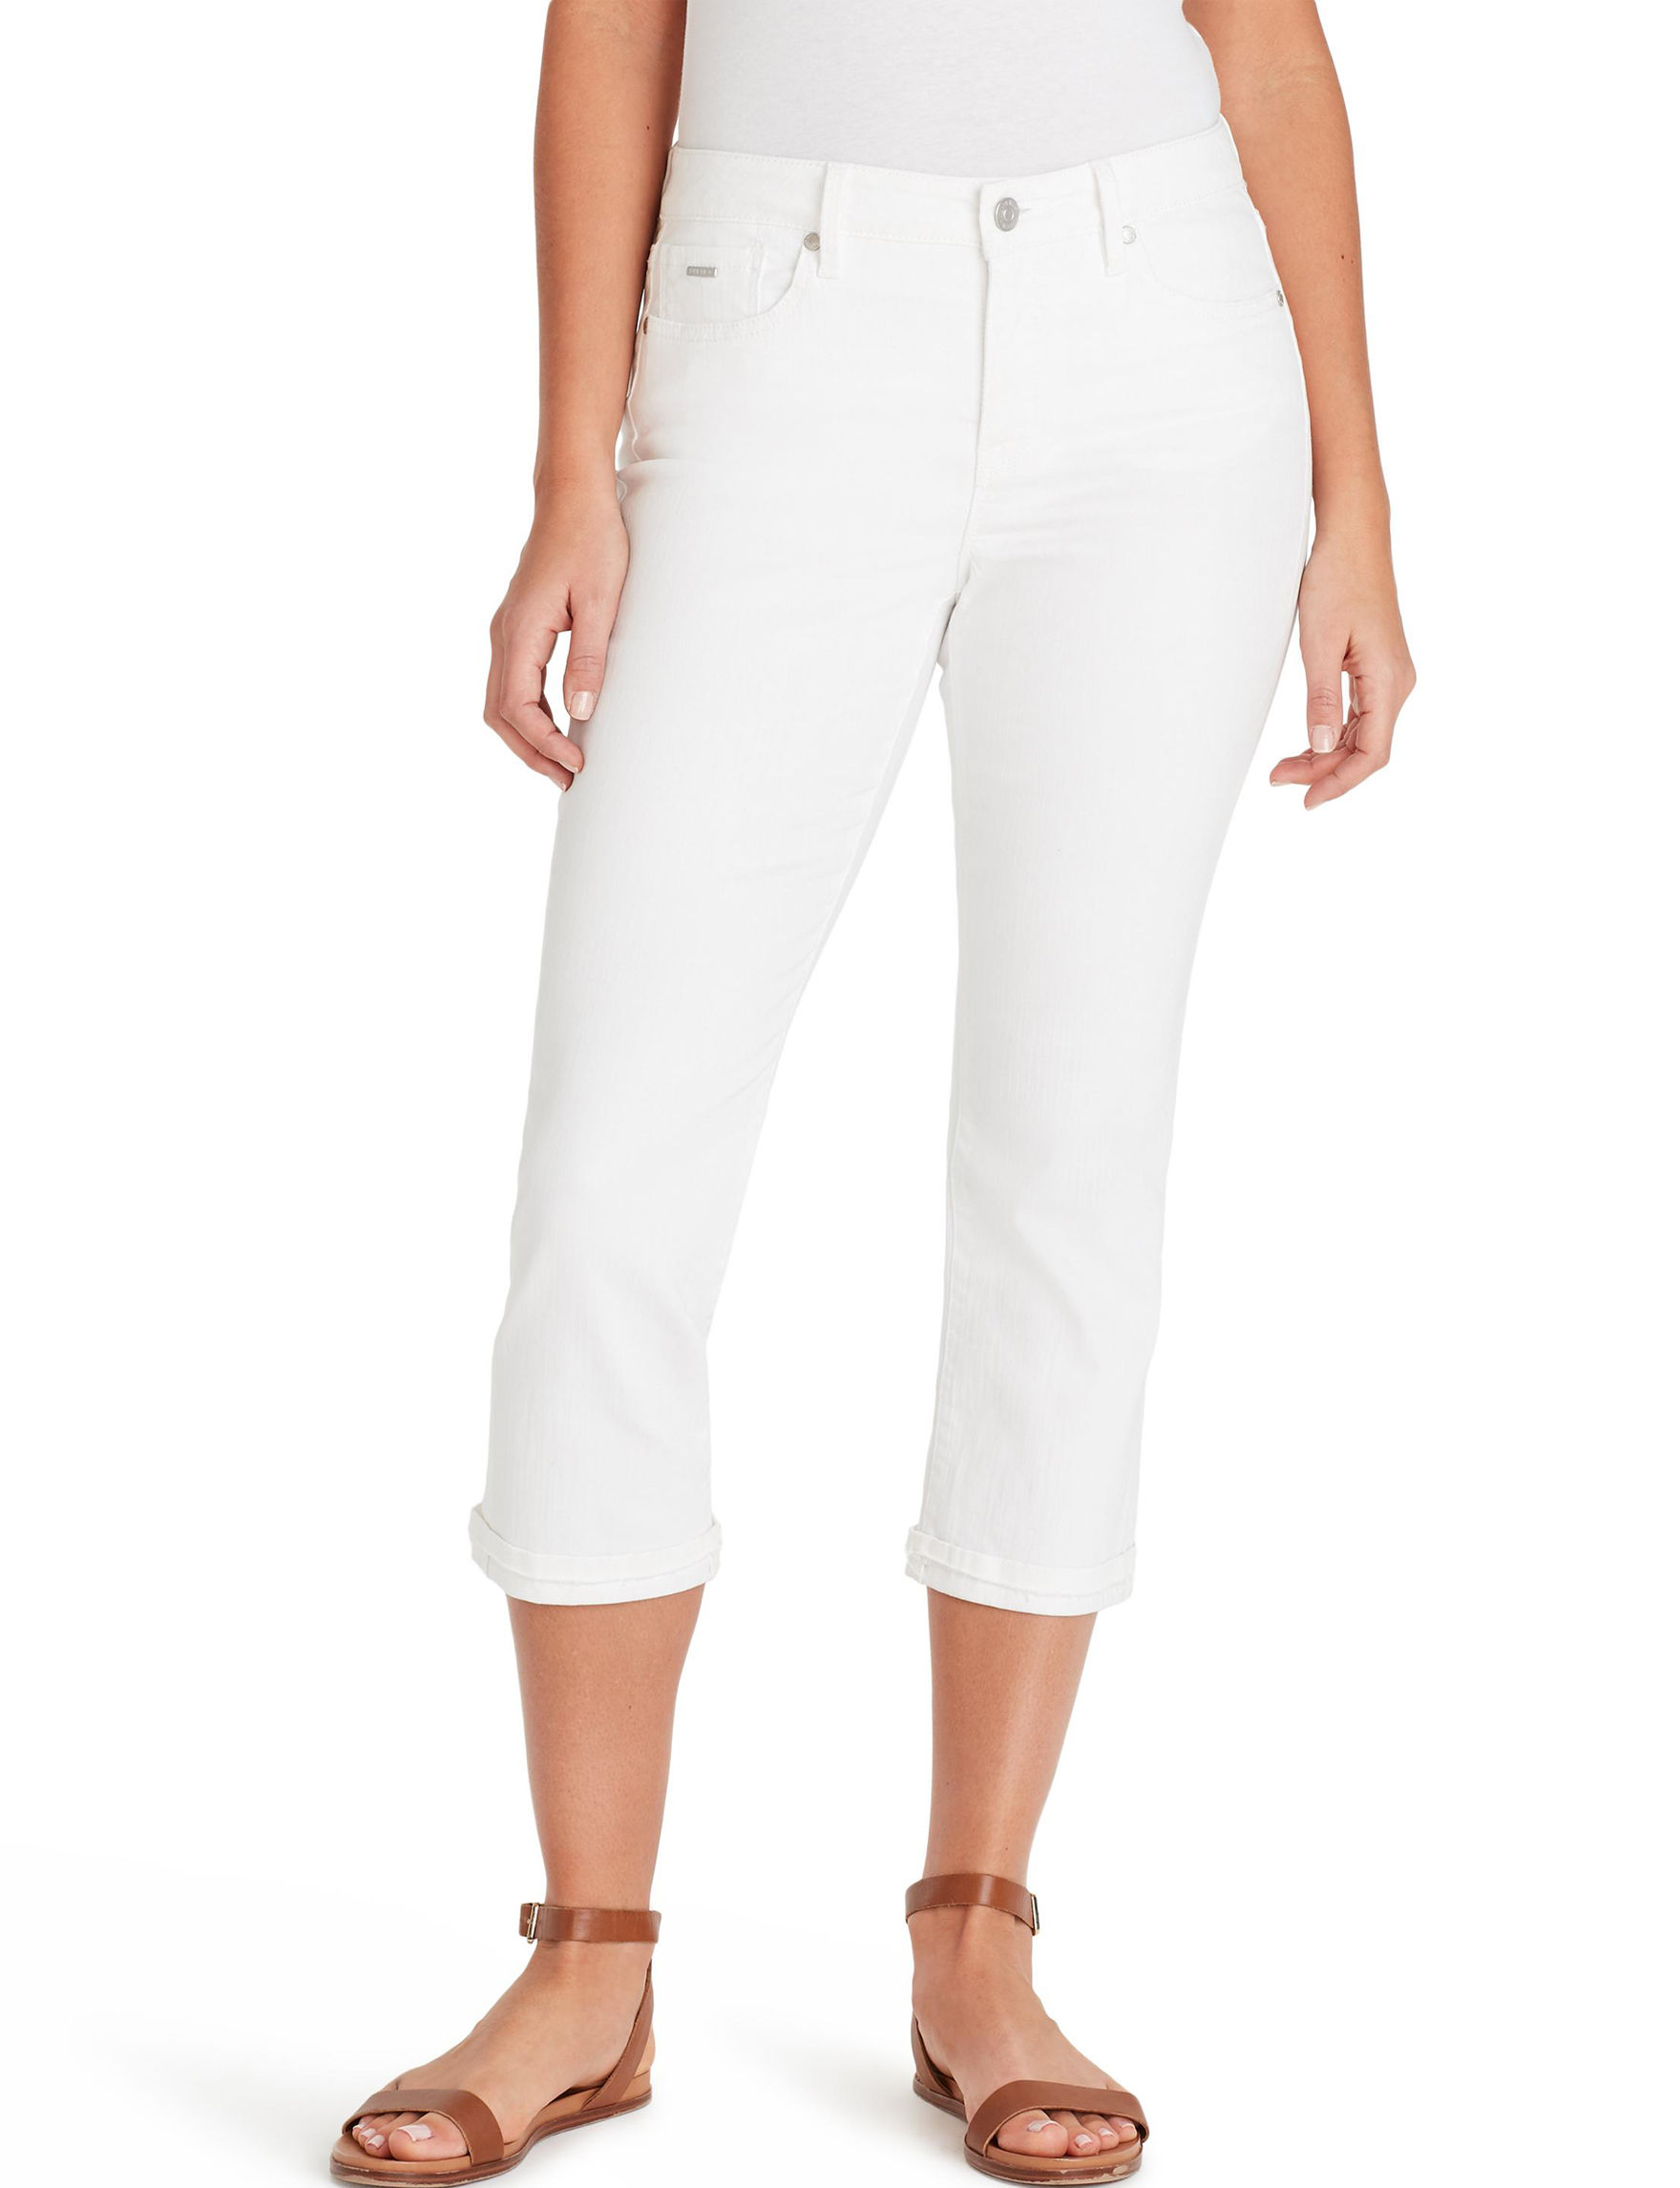 Nine West White Capris & Crops